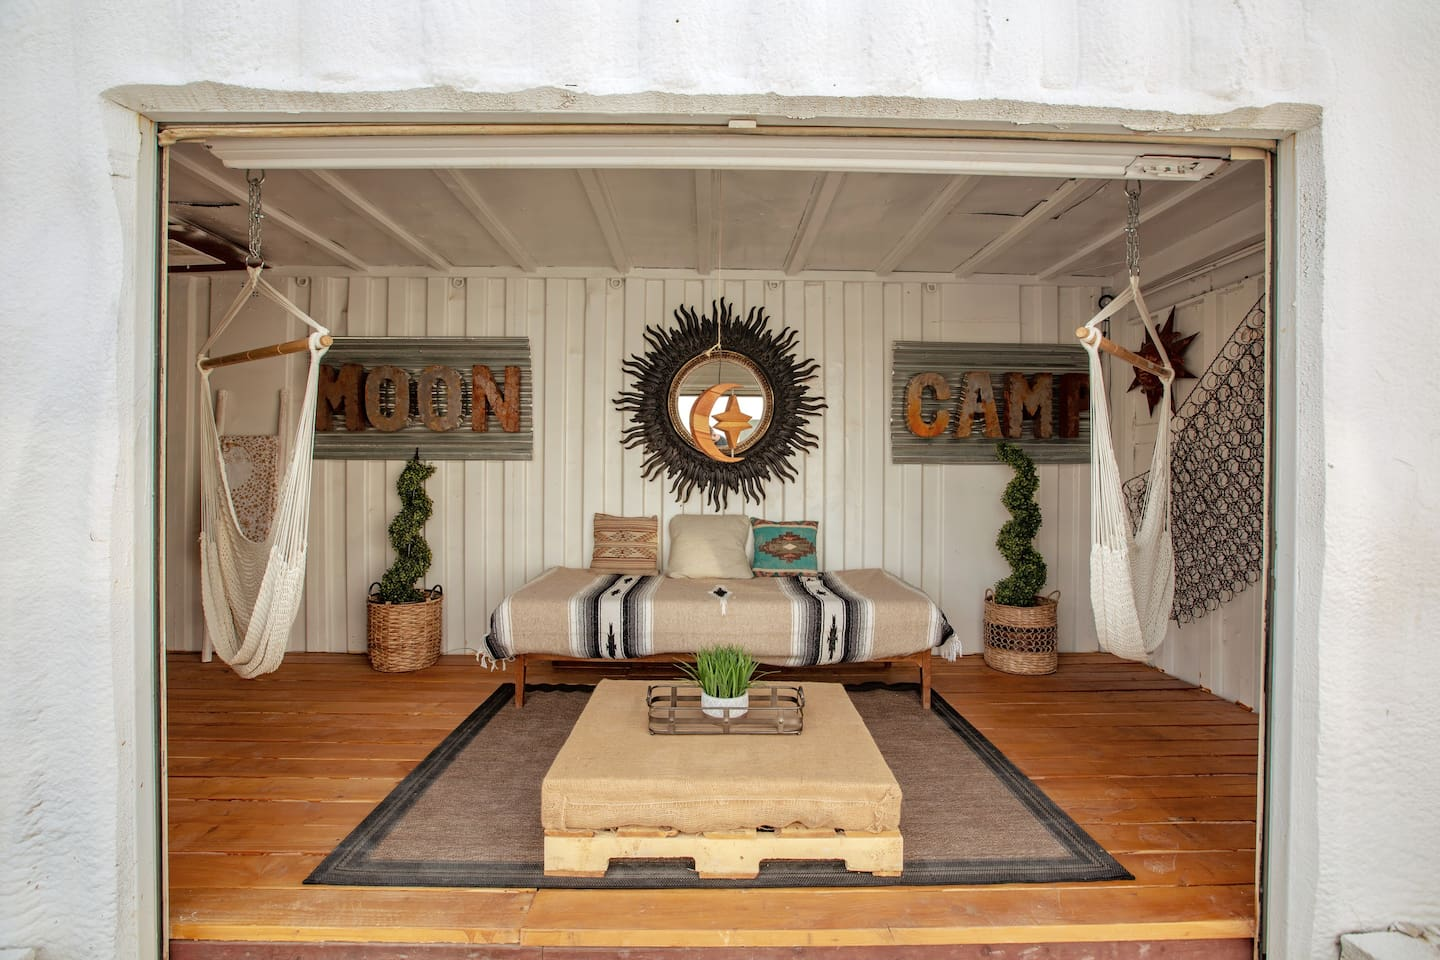 """Moon Camp's newly renovated """"Area 51"""" shipping container lounge living space equipped with a daybed and two swinging hammock chairs. Chill out amongst the stars!"""